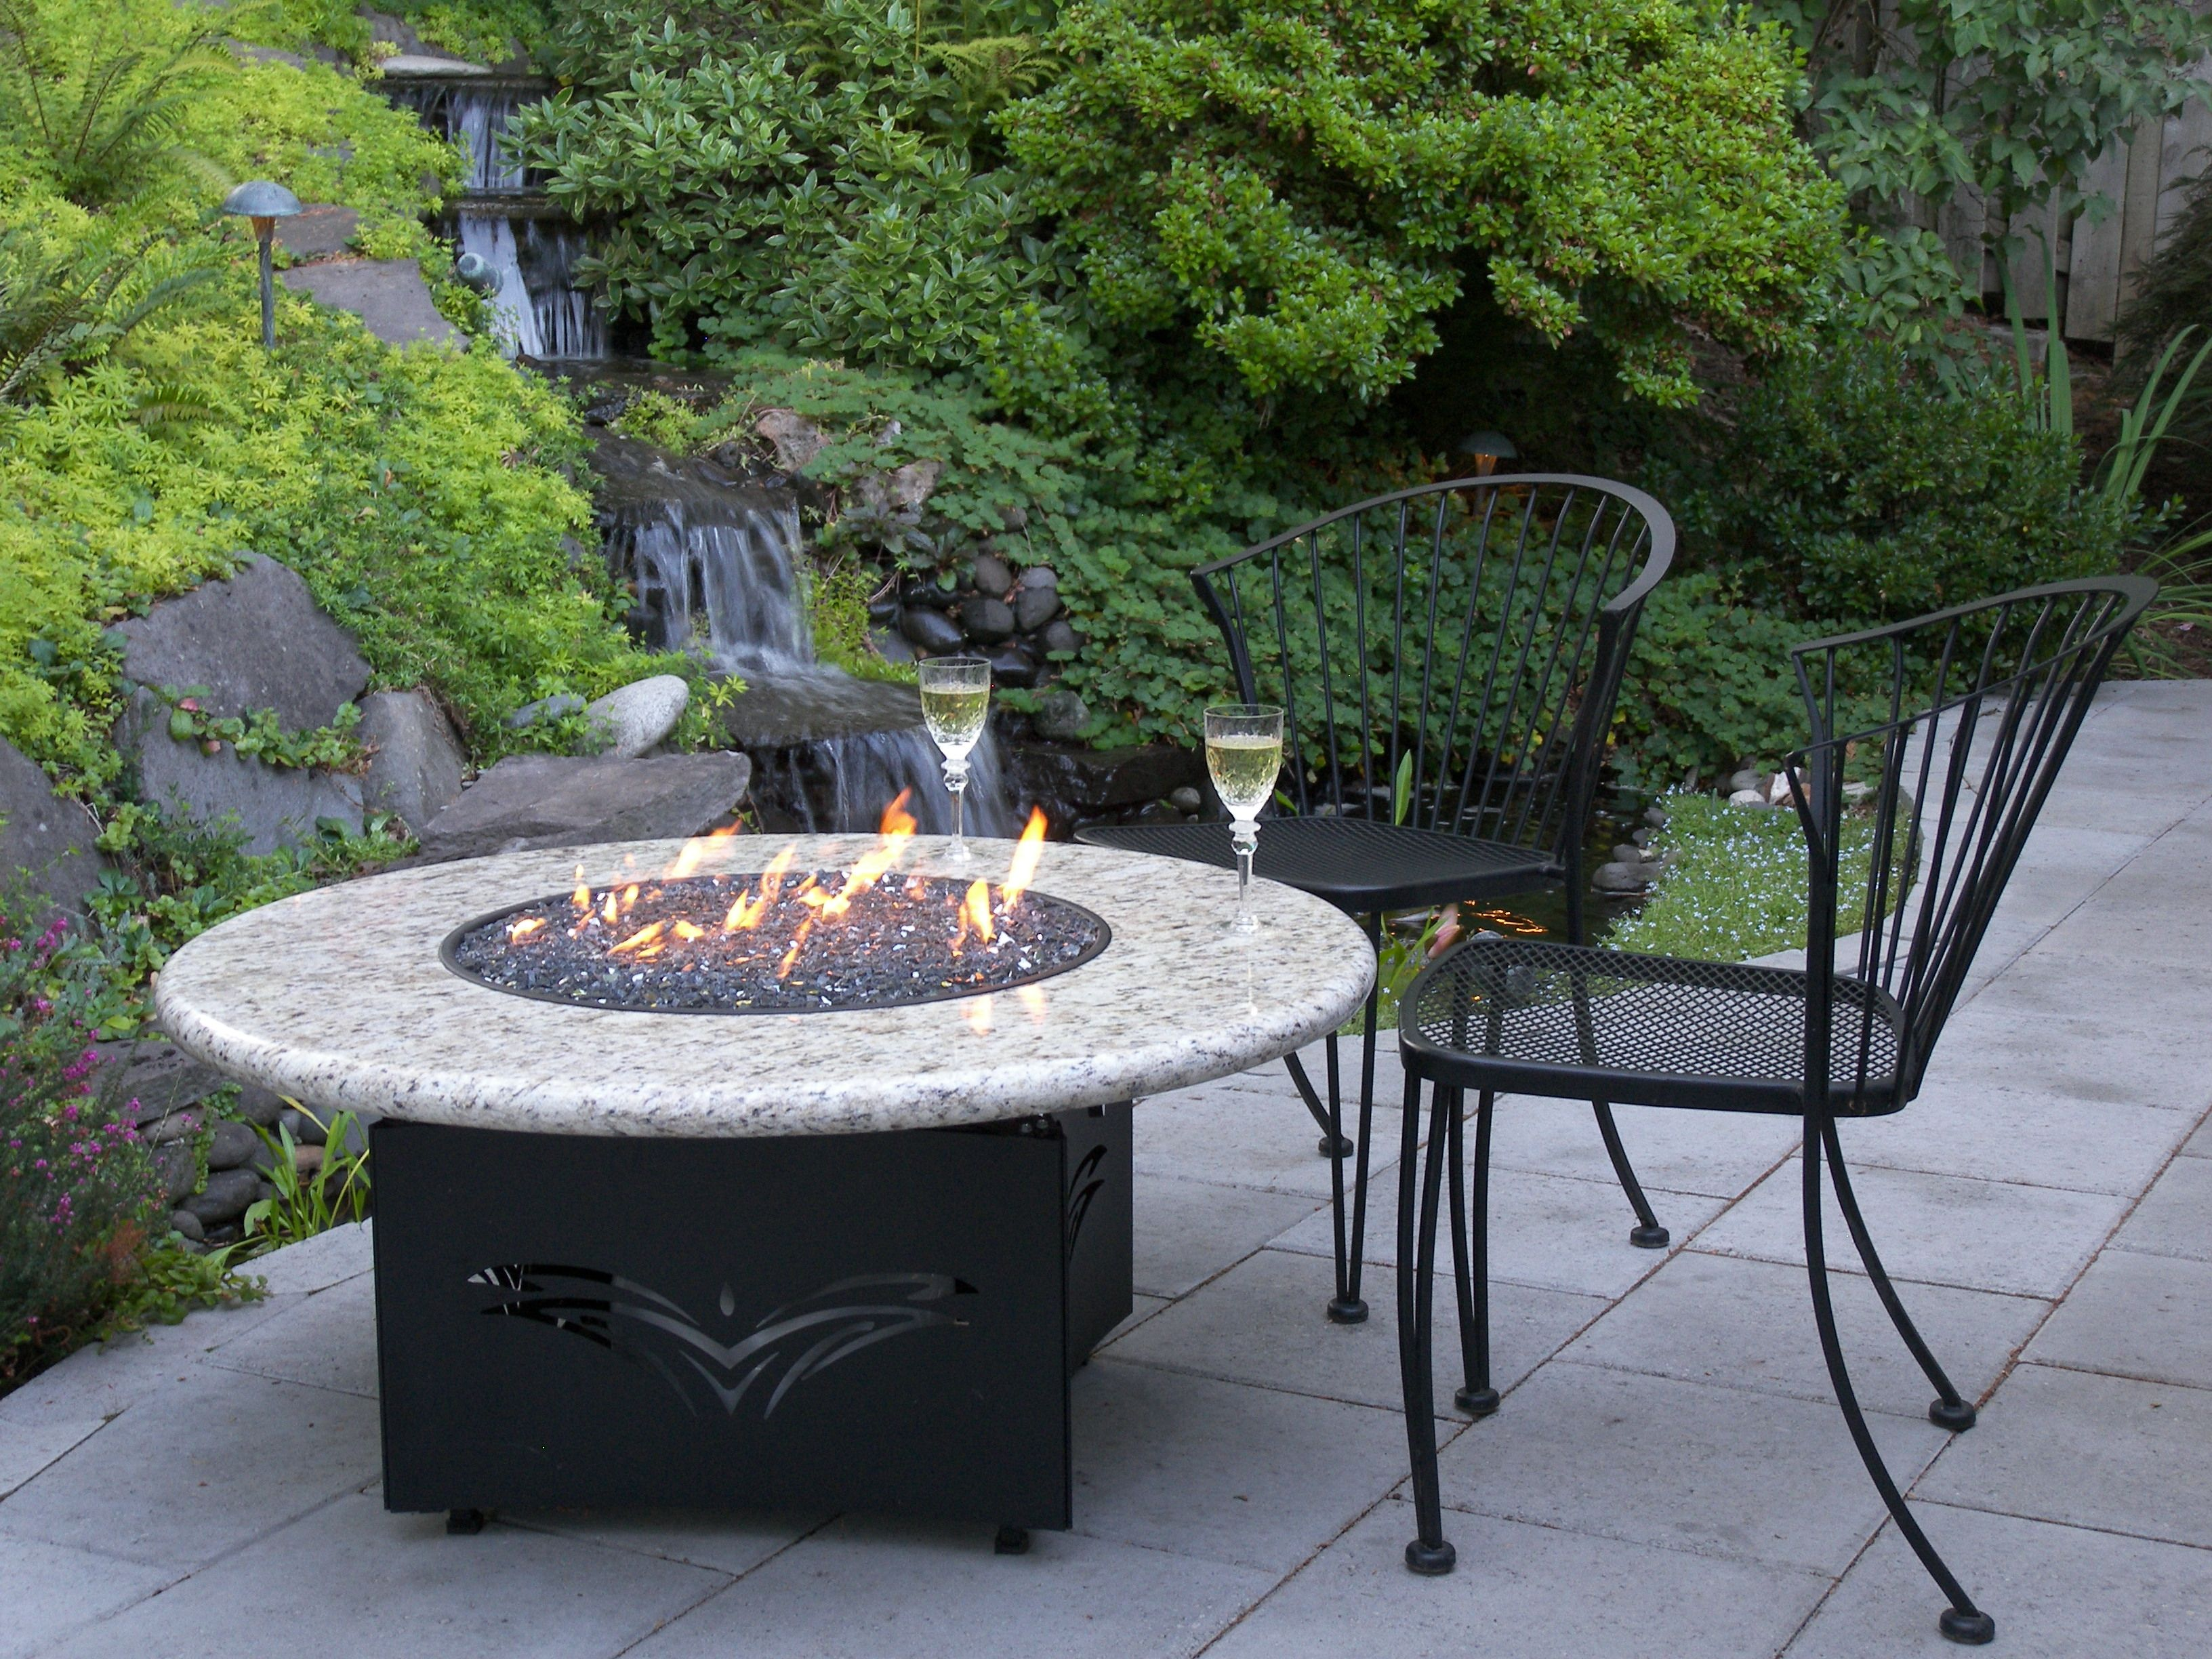 This Is The Oriflamme Fire Table With The Giallo Santo Granite Top